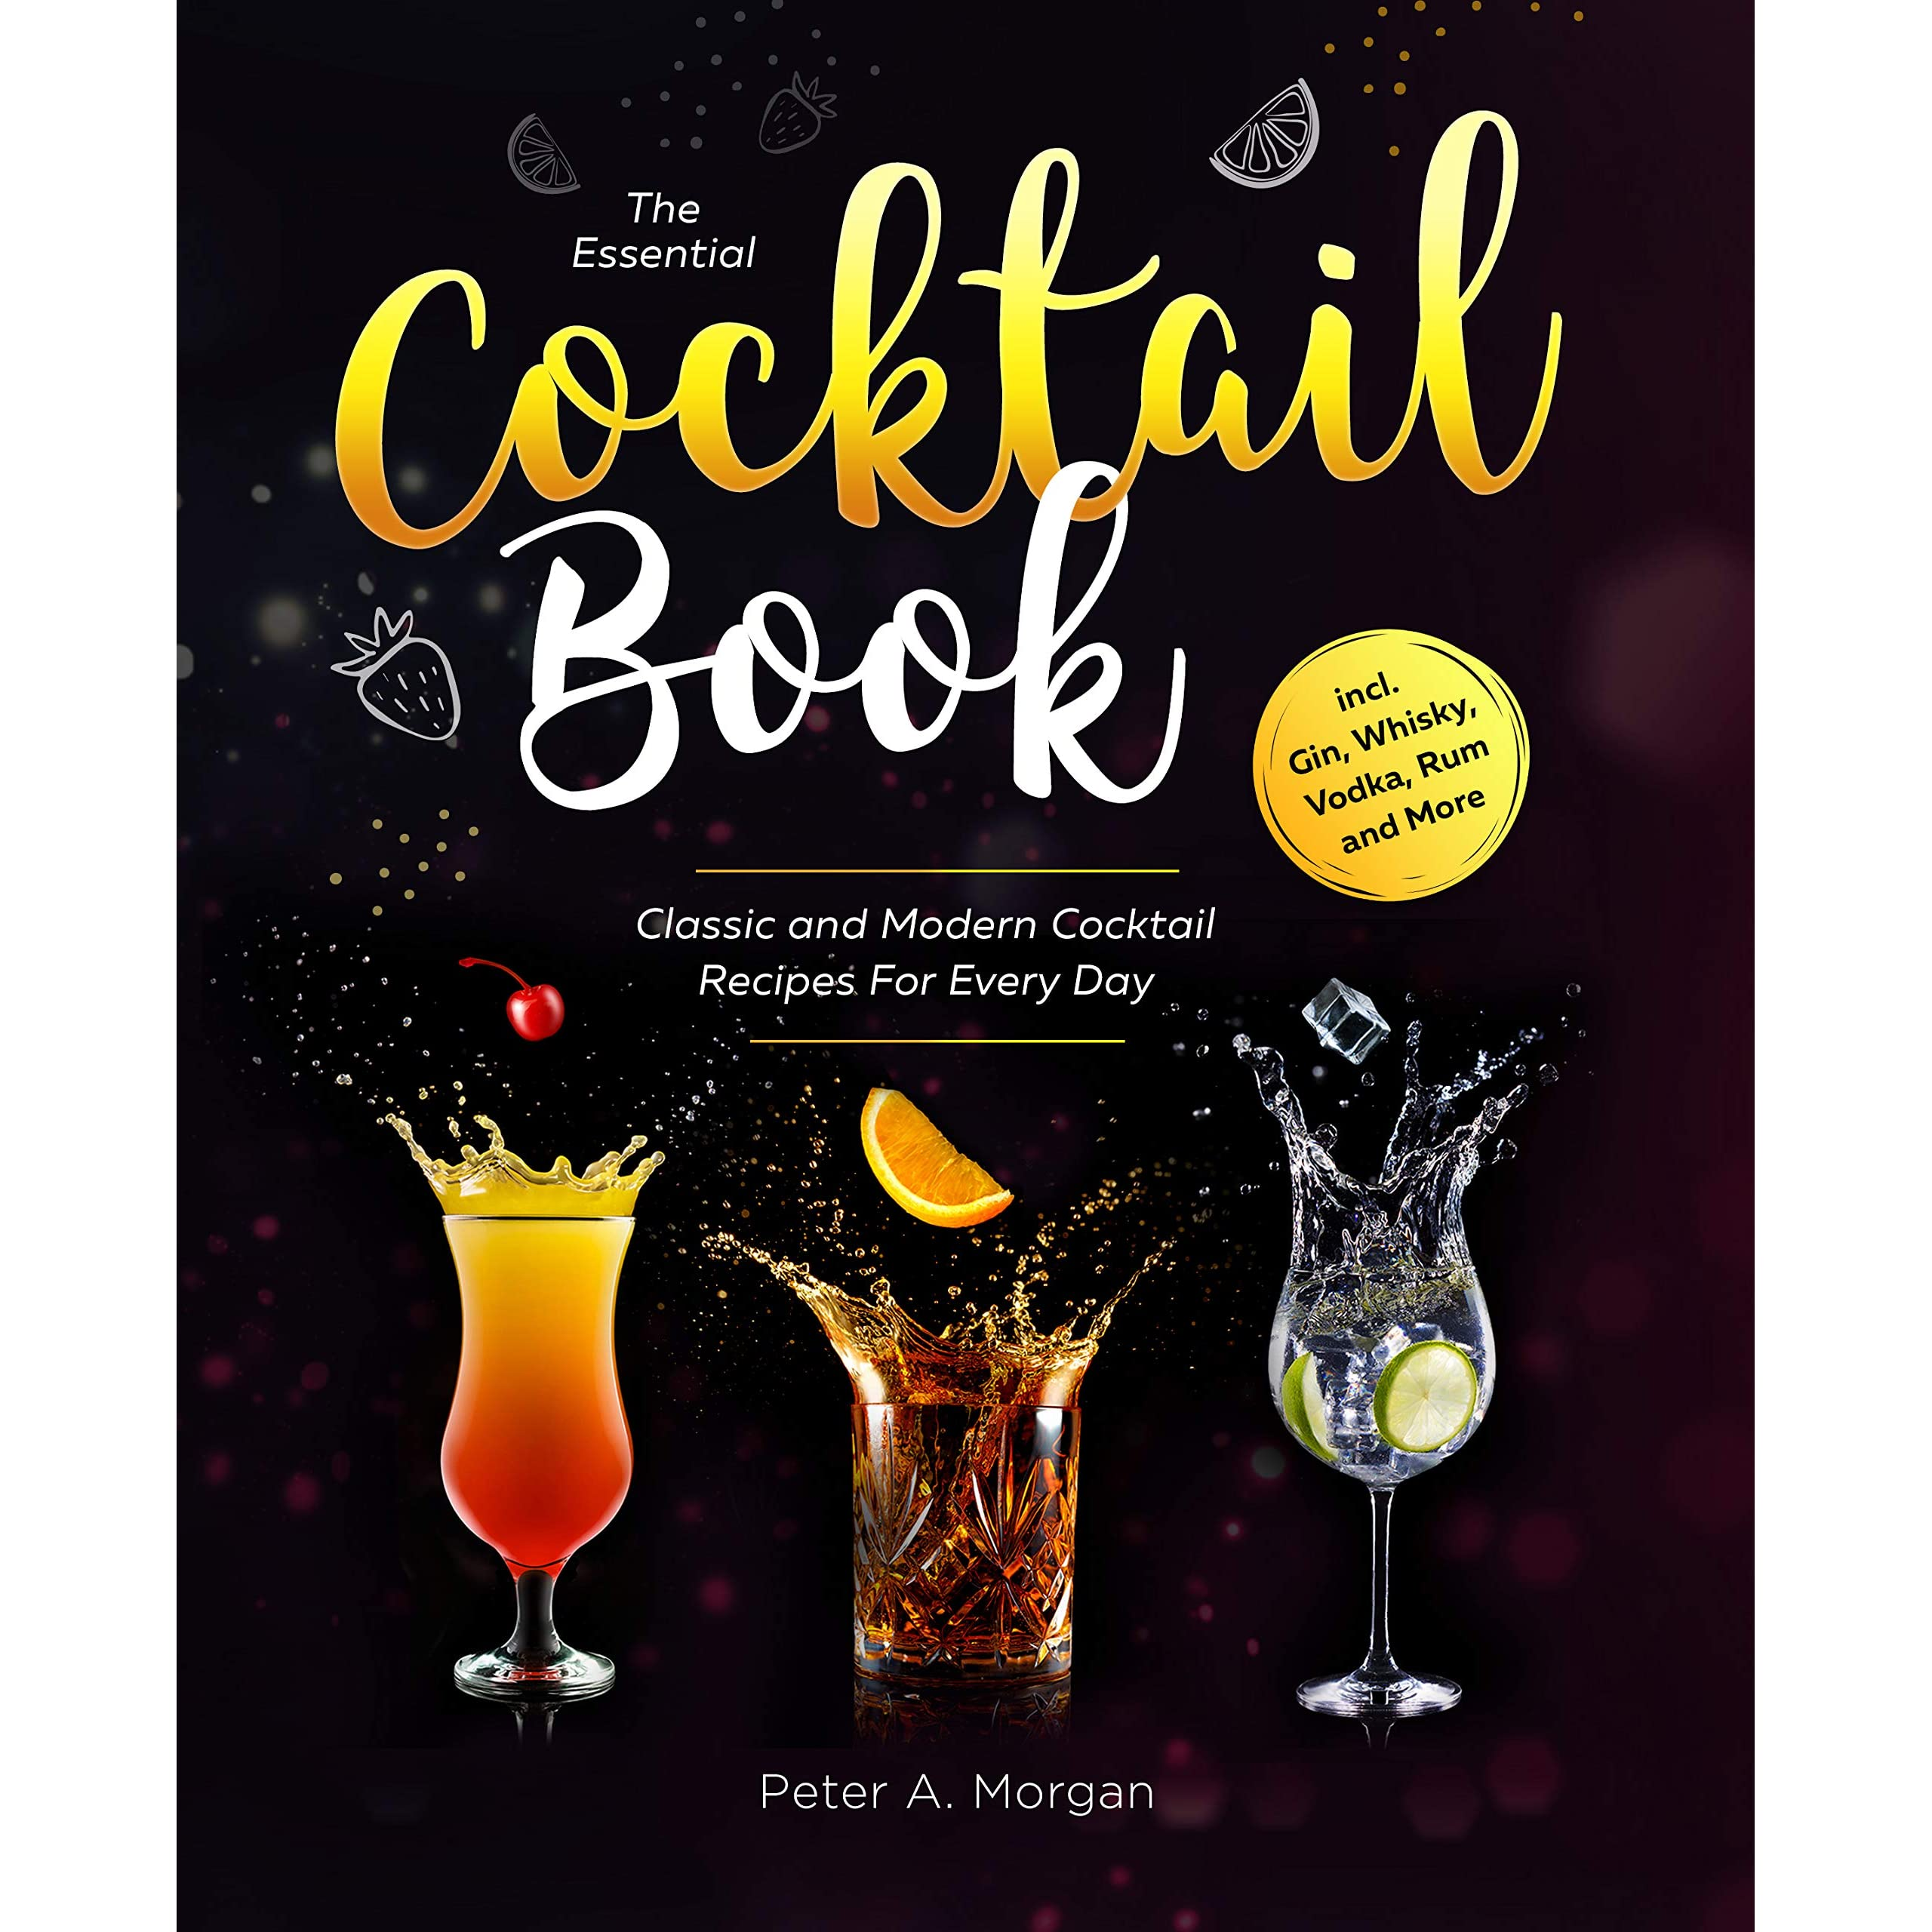 The Essential Cocktail Book Classic And Modern Cocktail Recipes For Every Day Incl Gin Whisky Vodka Rum And More By Peter A Morgan